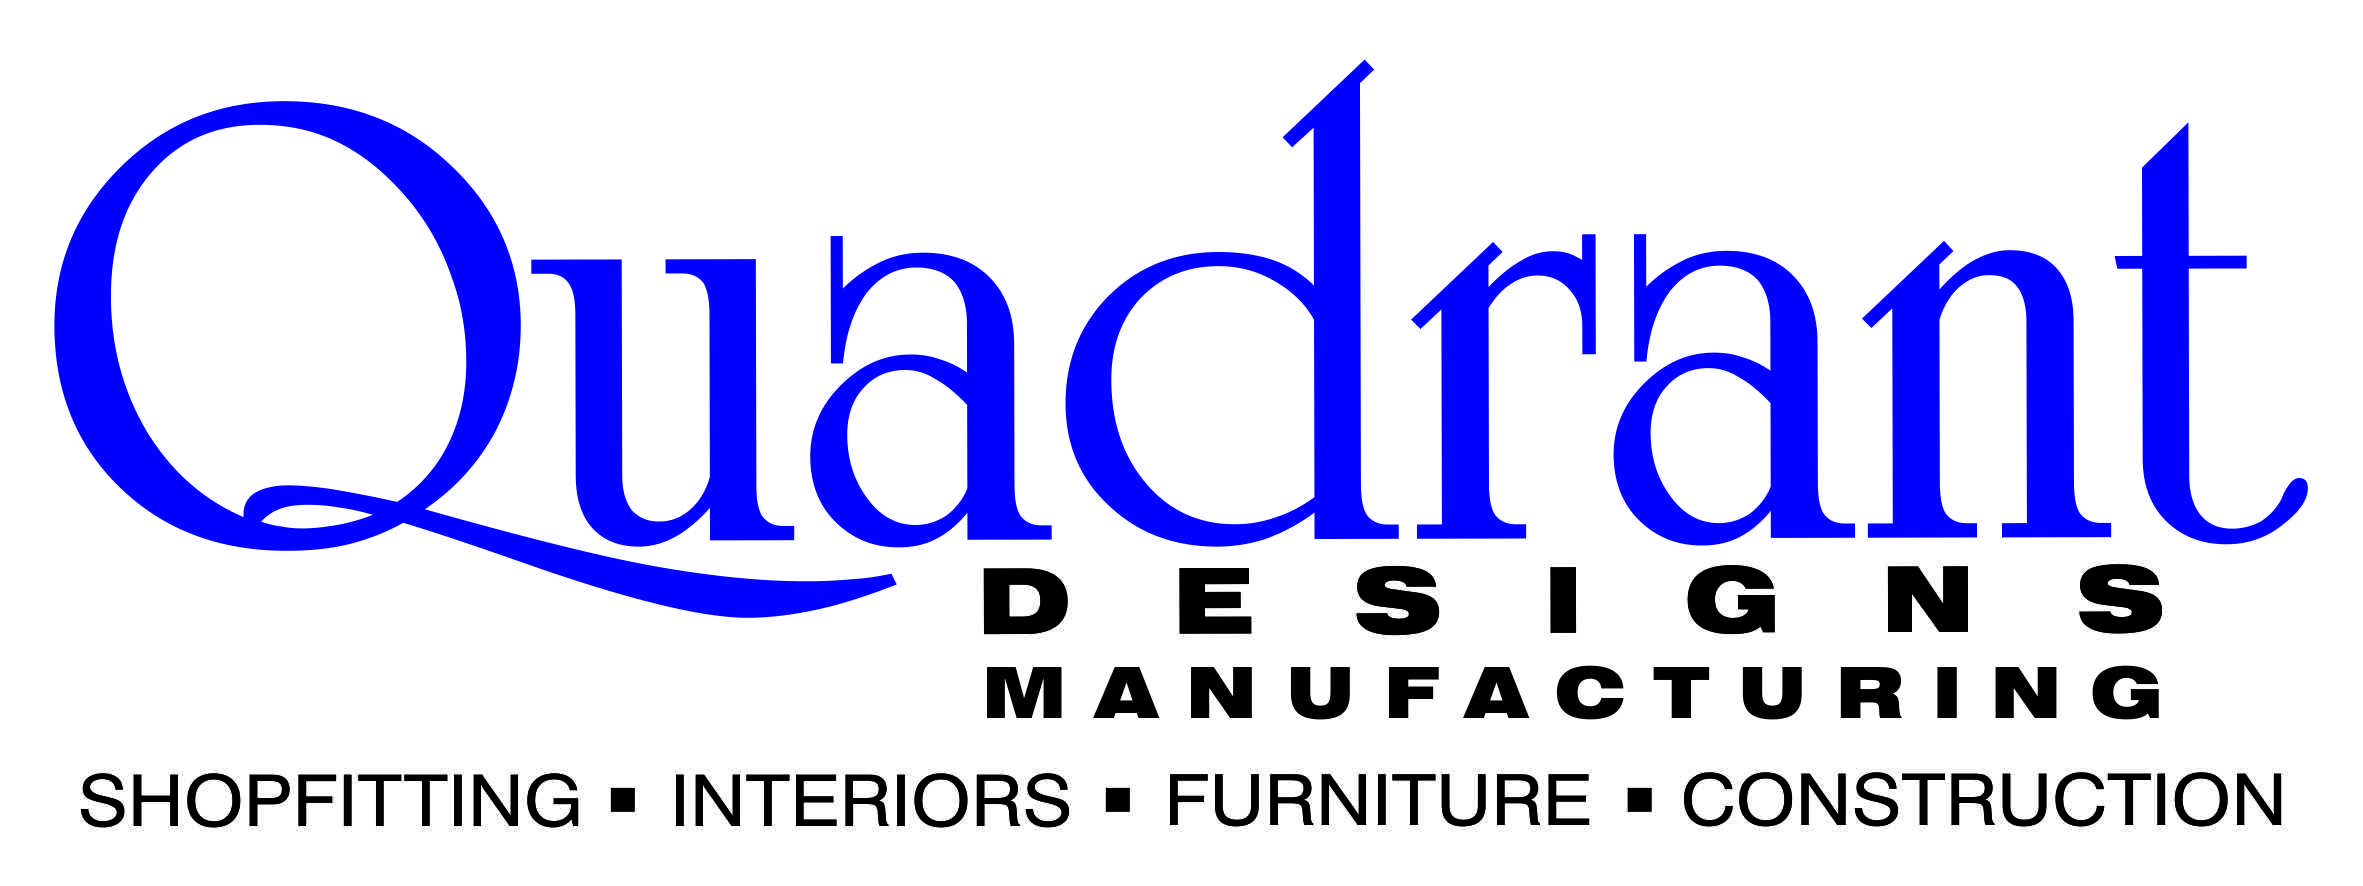 Upcoming 20th Anniversary For Shopfitting And Interior Design Of Retail Stores, Offices And Warehouses In South Africa